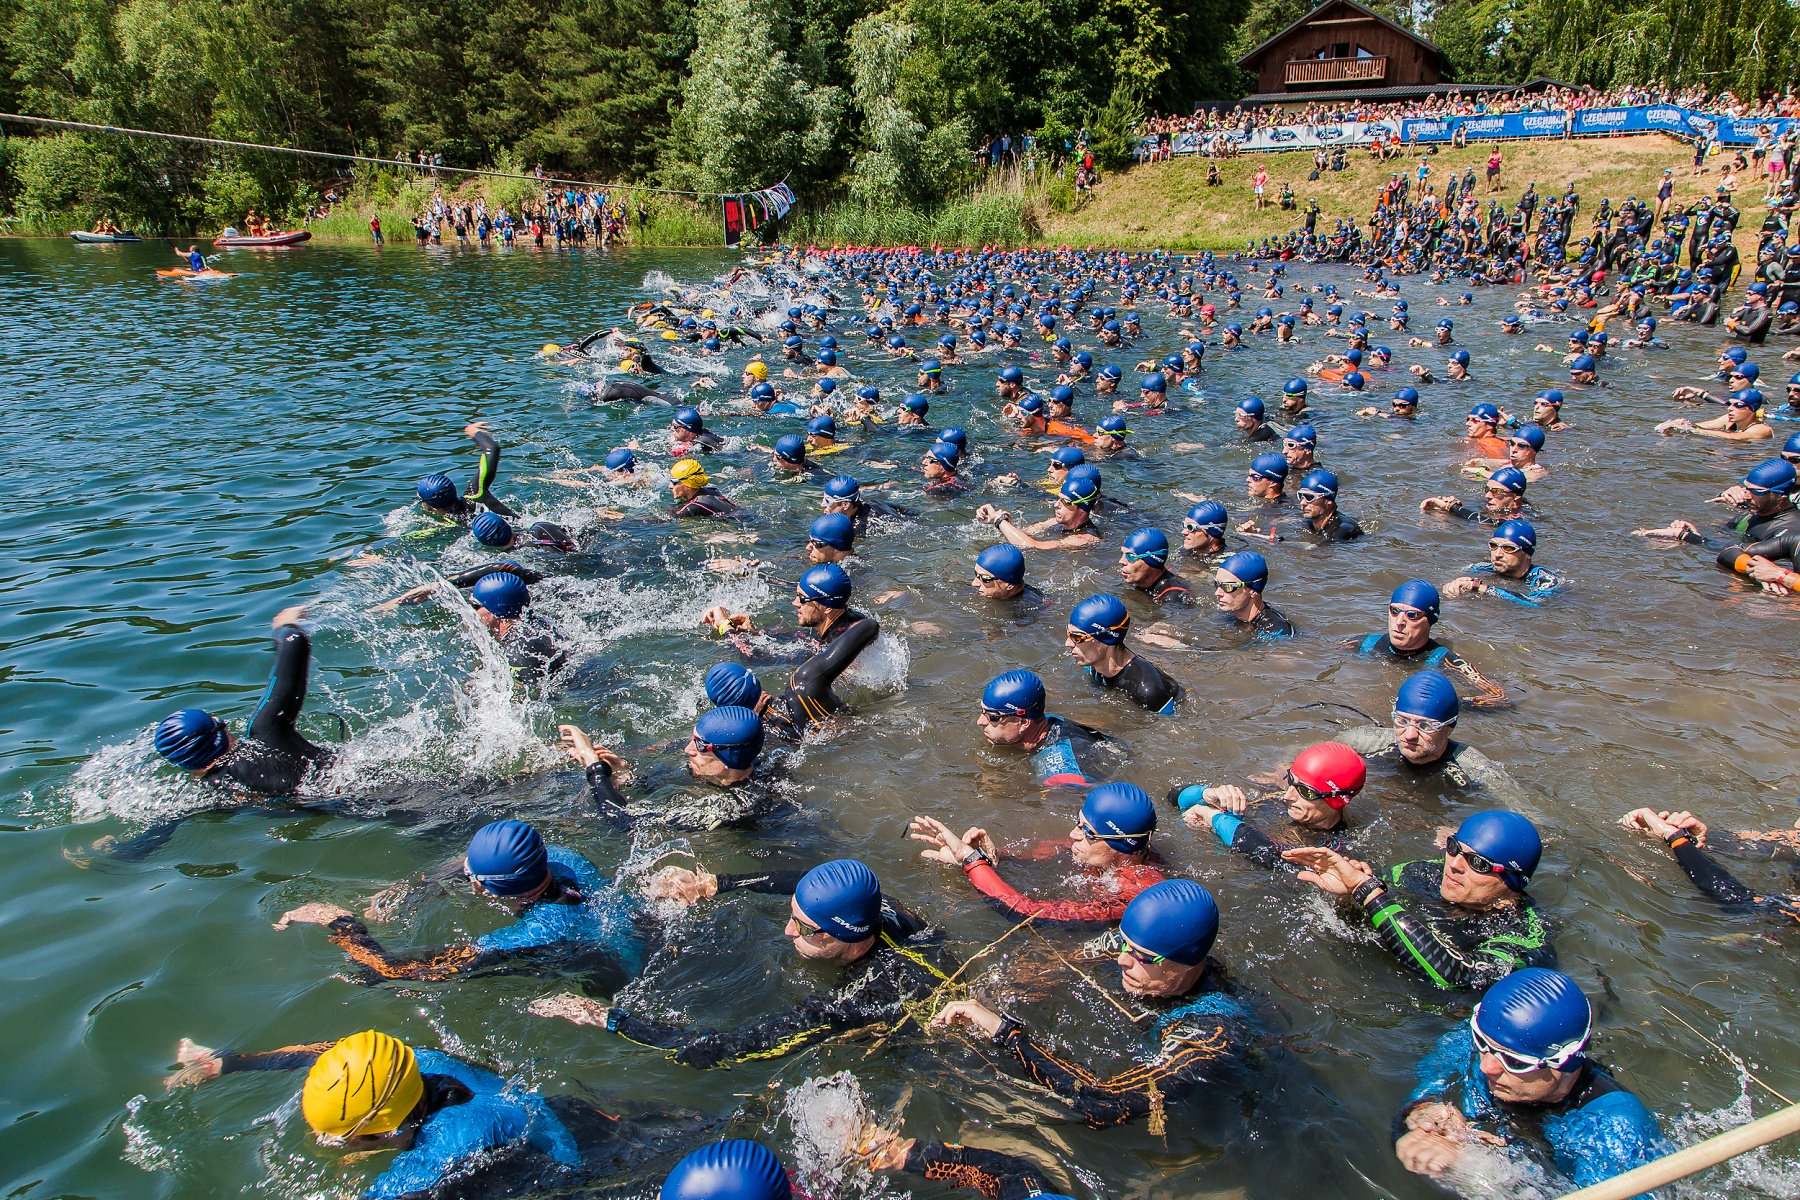 CZECHMAN Triathlon 2019 starts in 300 days